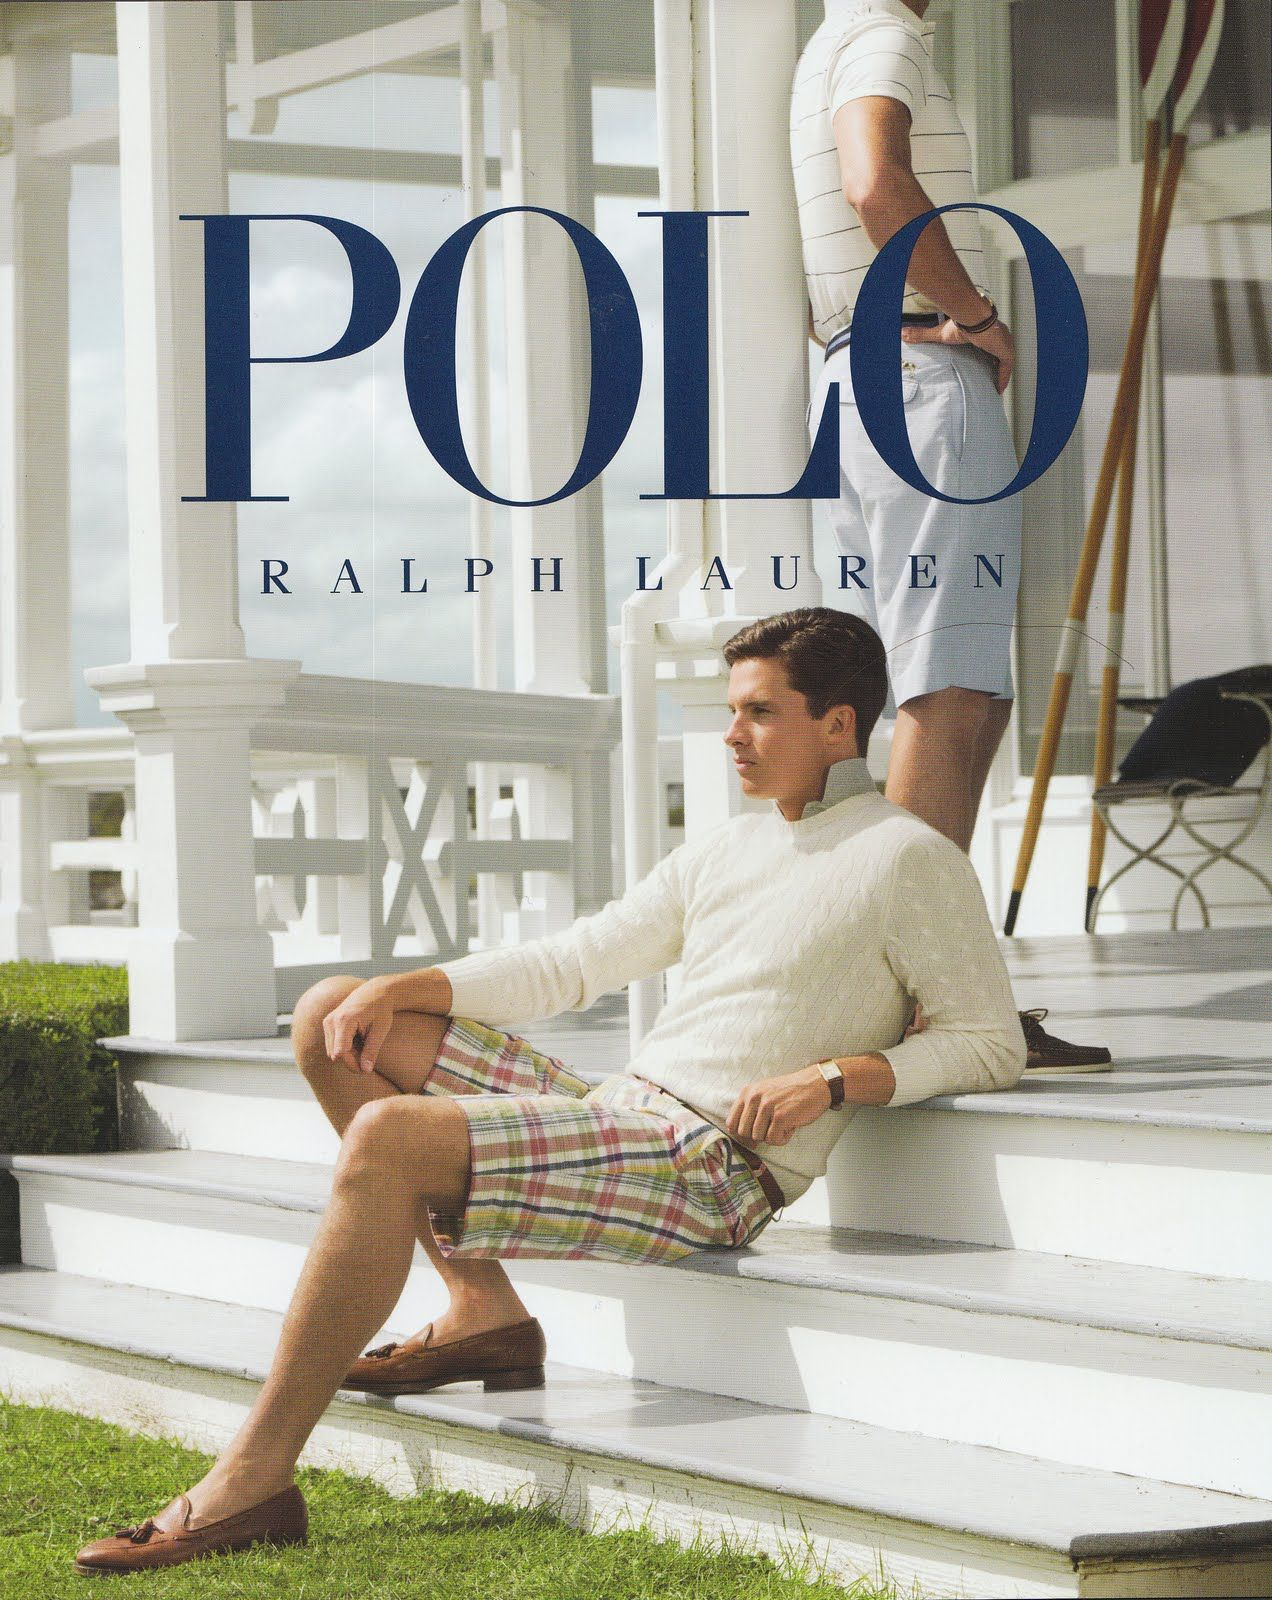 1000+ images about Ralph Lauren on Pinterest | Ralph lauren, Ad campaigns and Polo ralph lauren